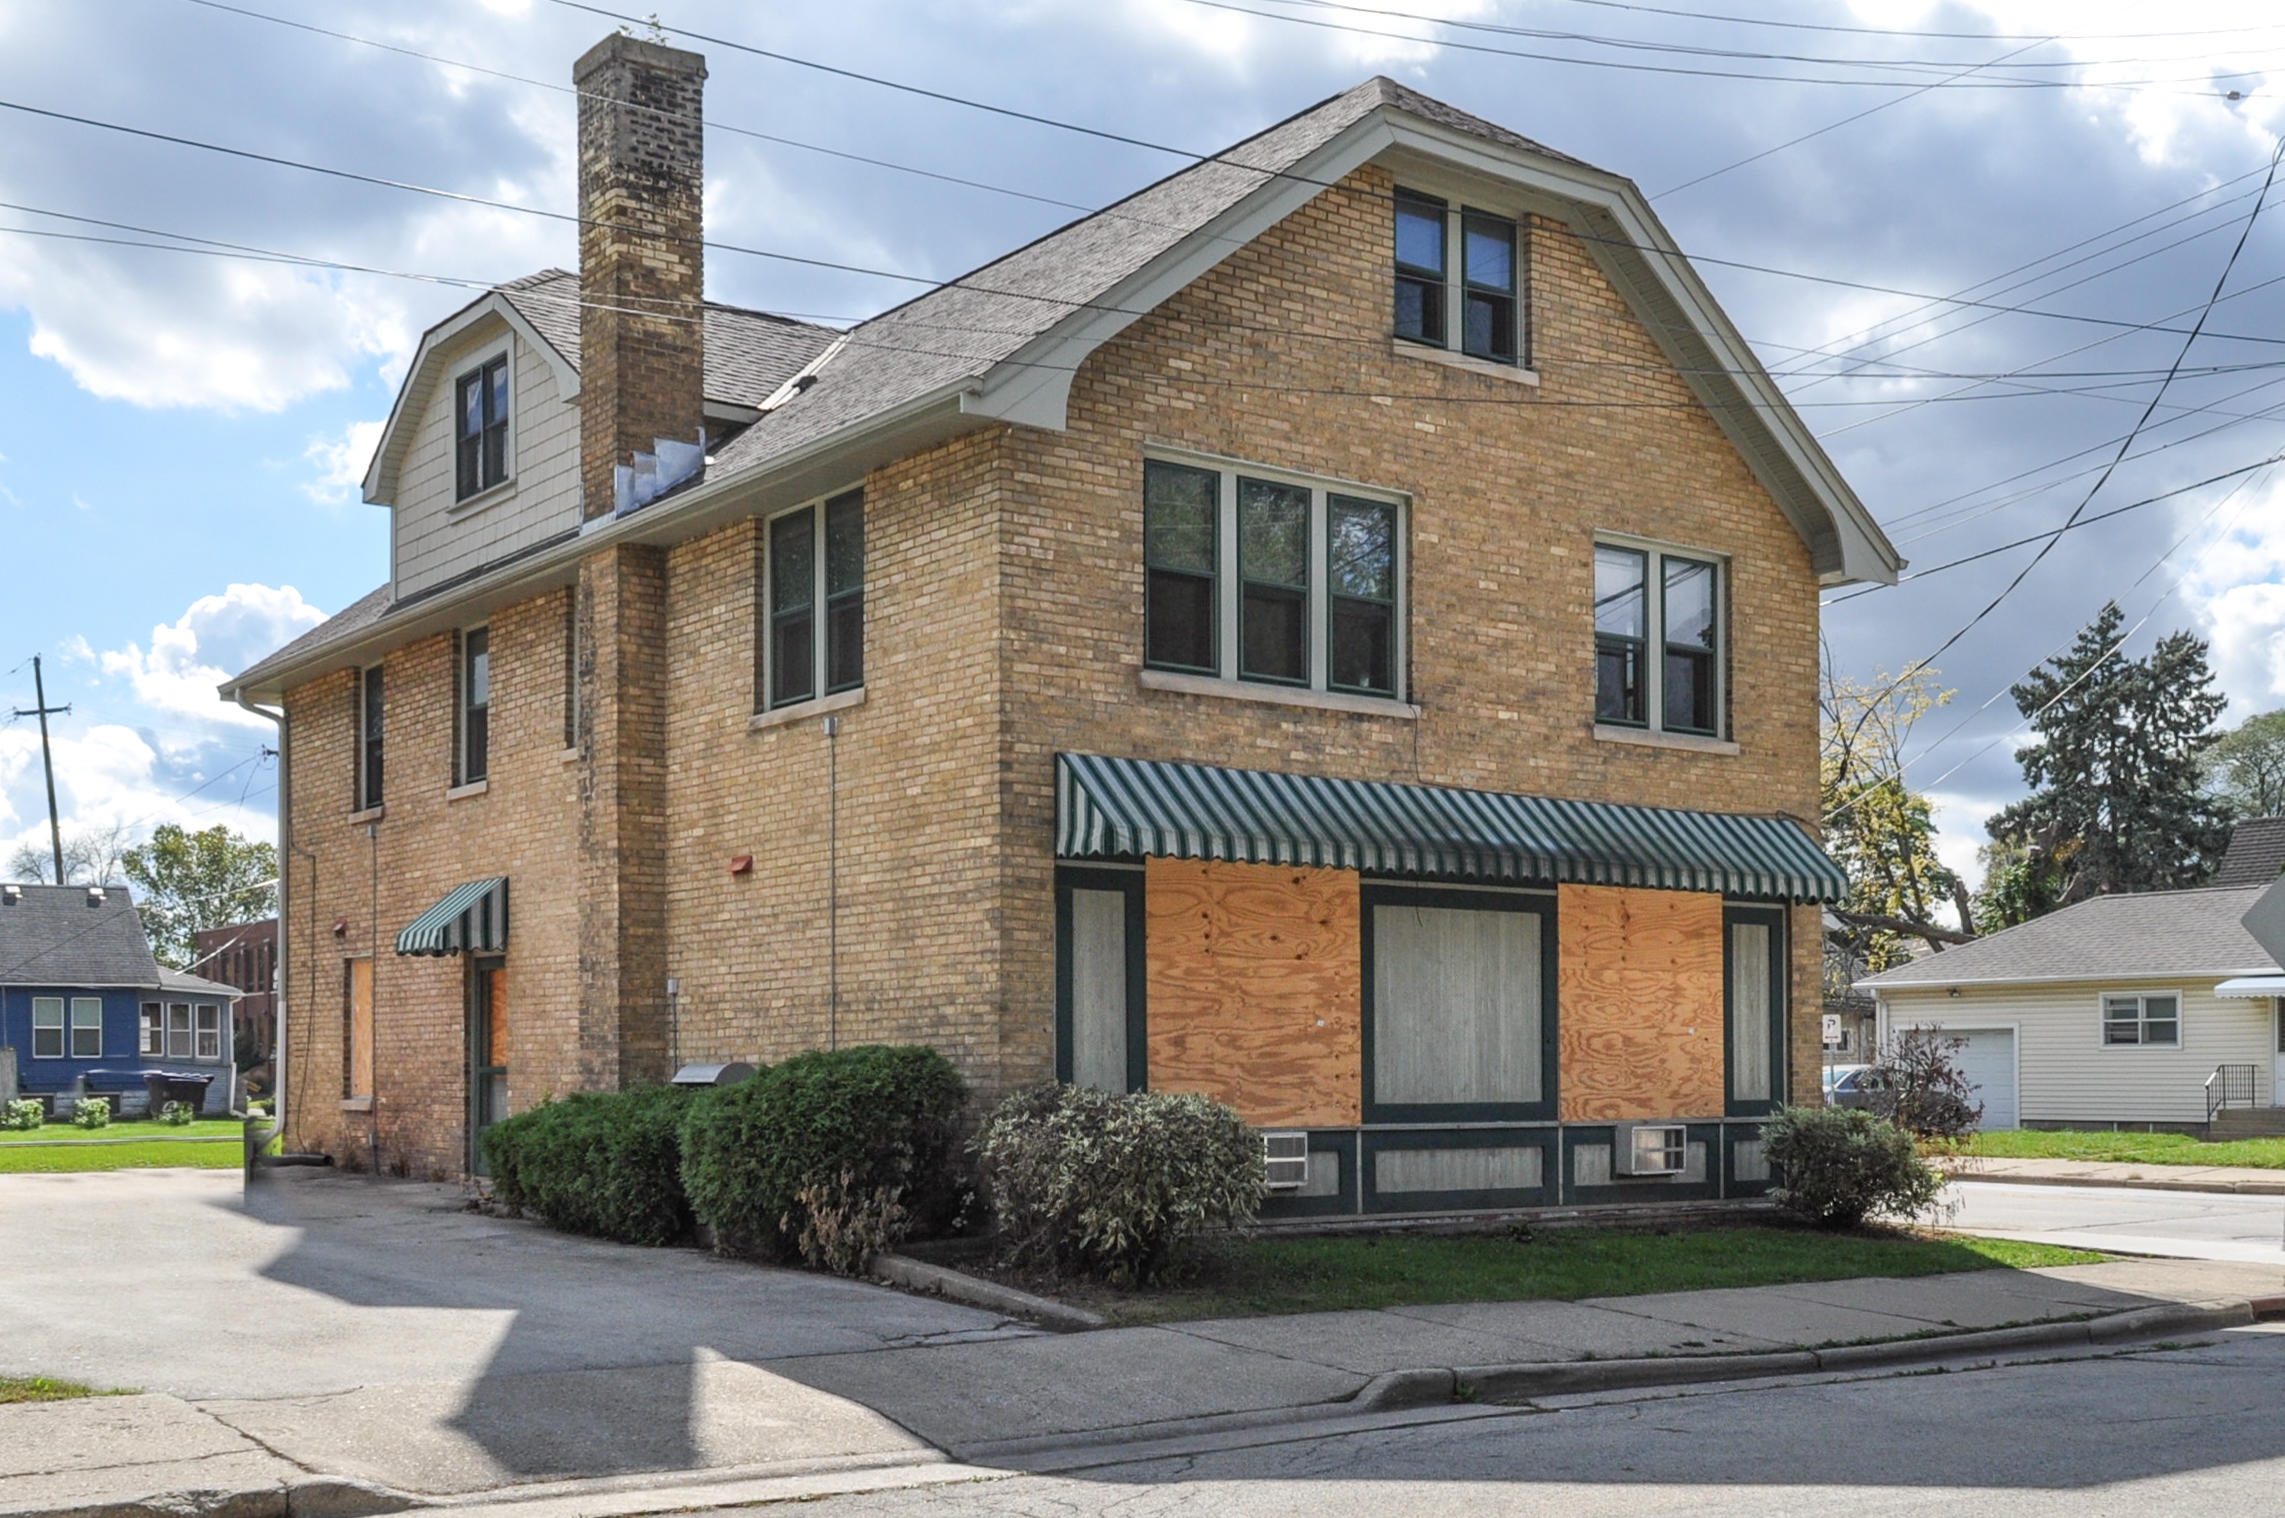 415 Barstow St, Waukesha, Wisconsin 53186, ,Multi-Family Investment,For Sale,Barstow St,1607773